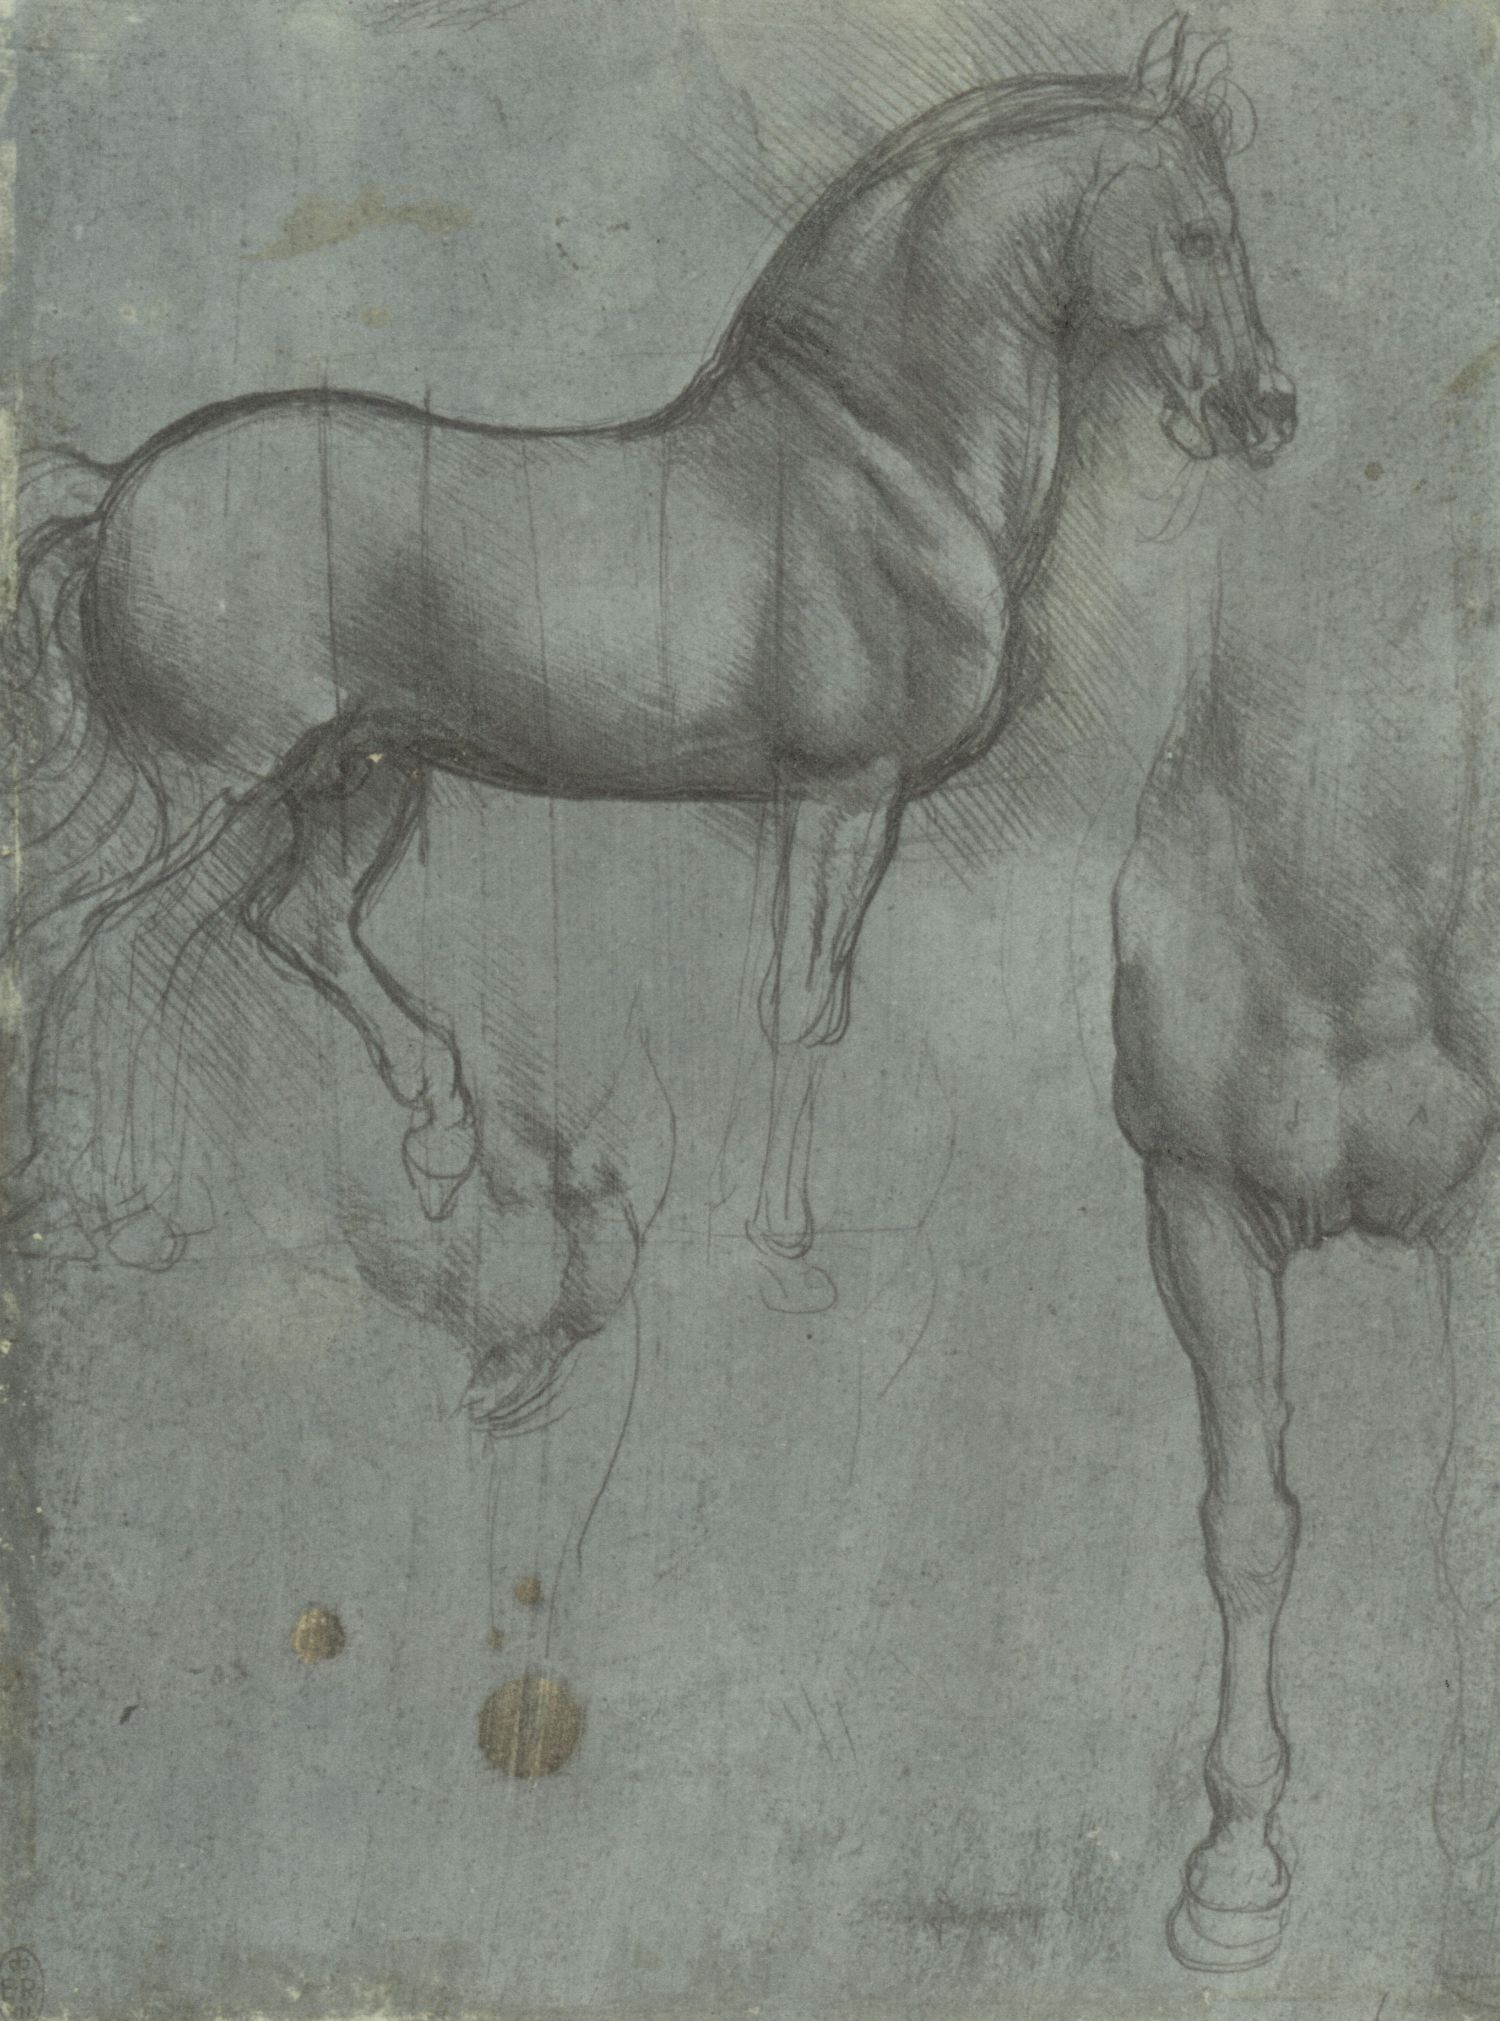 Leonardo da Vinci, Royal Collection, Windsor, c. 12321r/P92r Studio di cavallo visto di lato, di fronte e di tre quarti